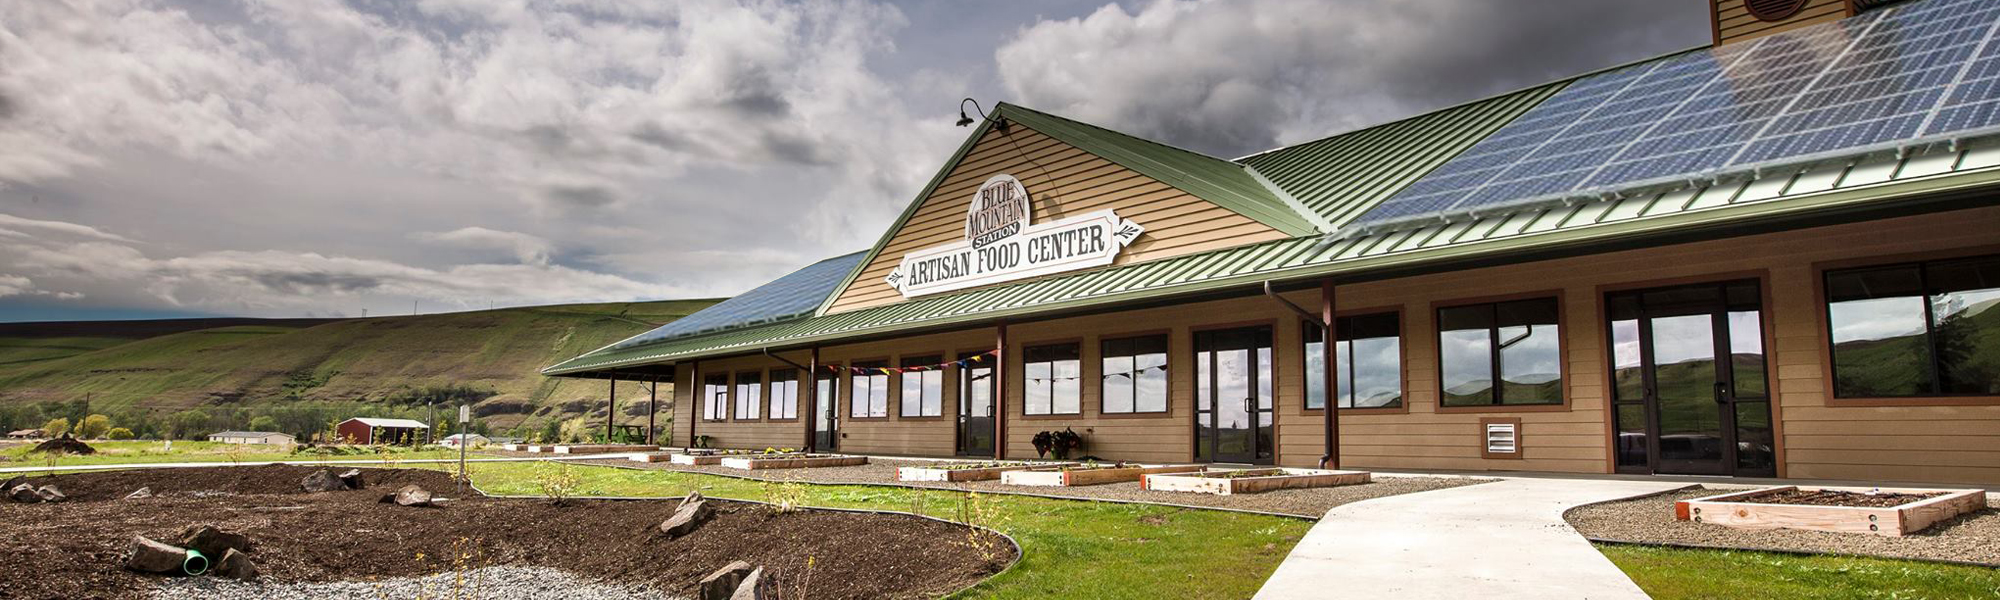 Blue Mountain Station Featuring Fresh Local Products